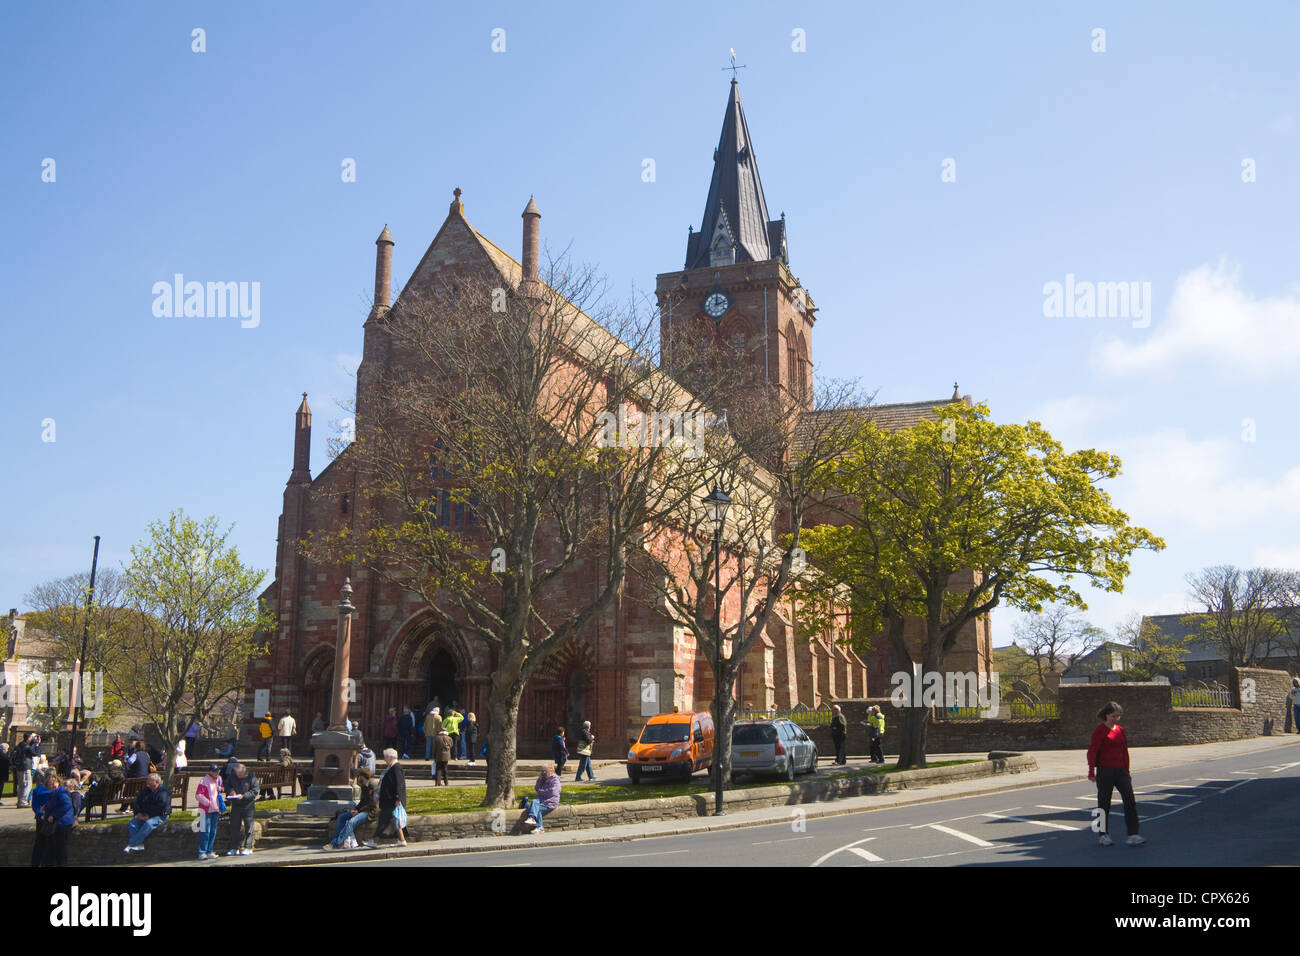 Kirkwall Orkney Islands Front view of impressive St Magnus' Cathedral crowded with visitors - Stock Image